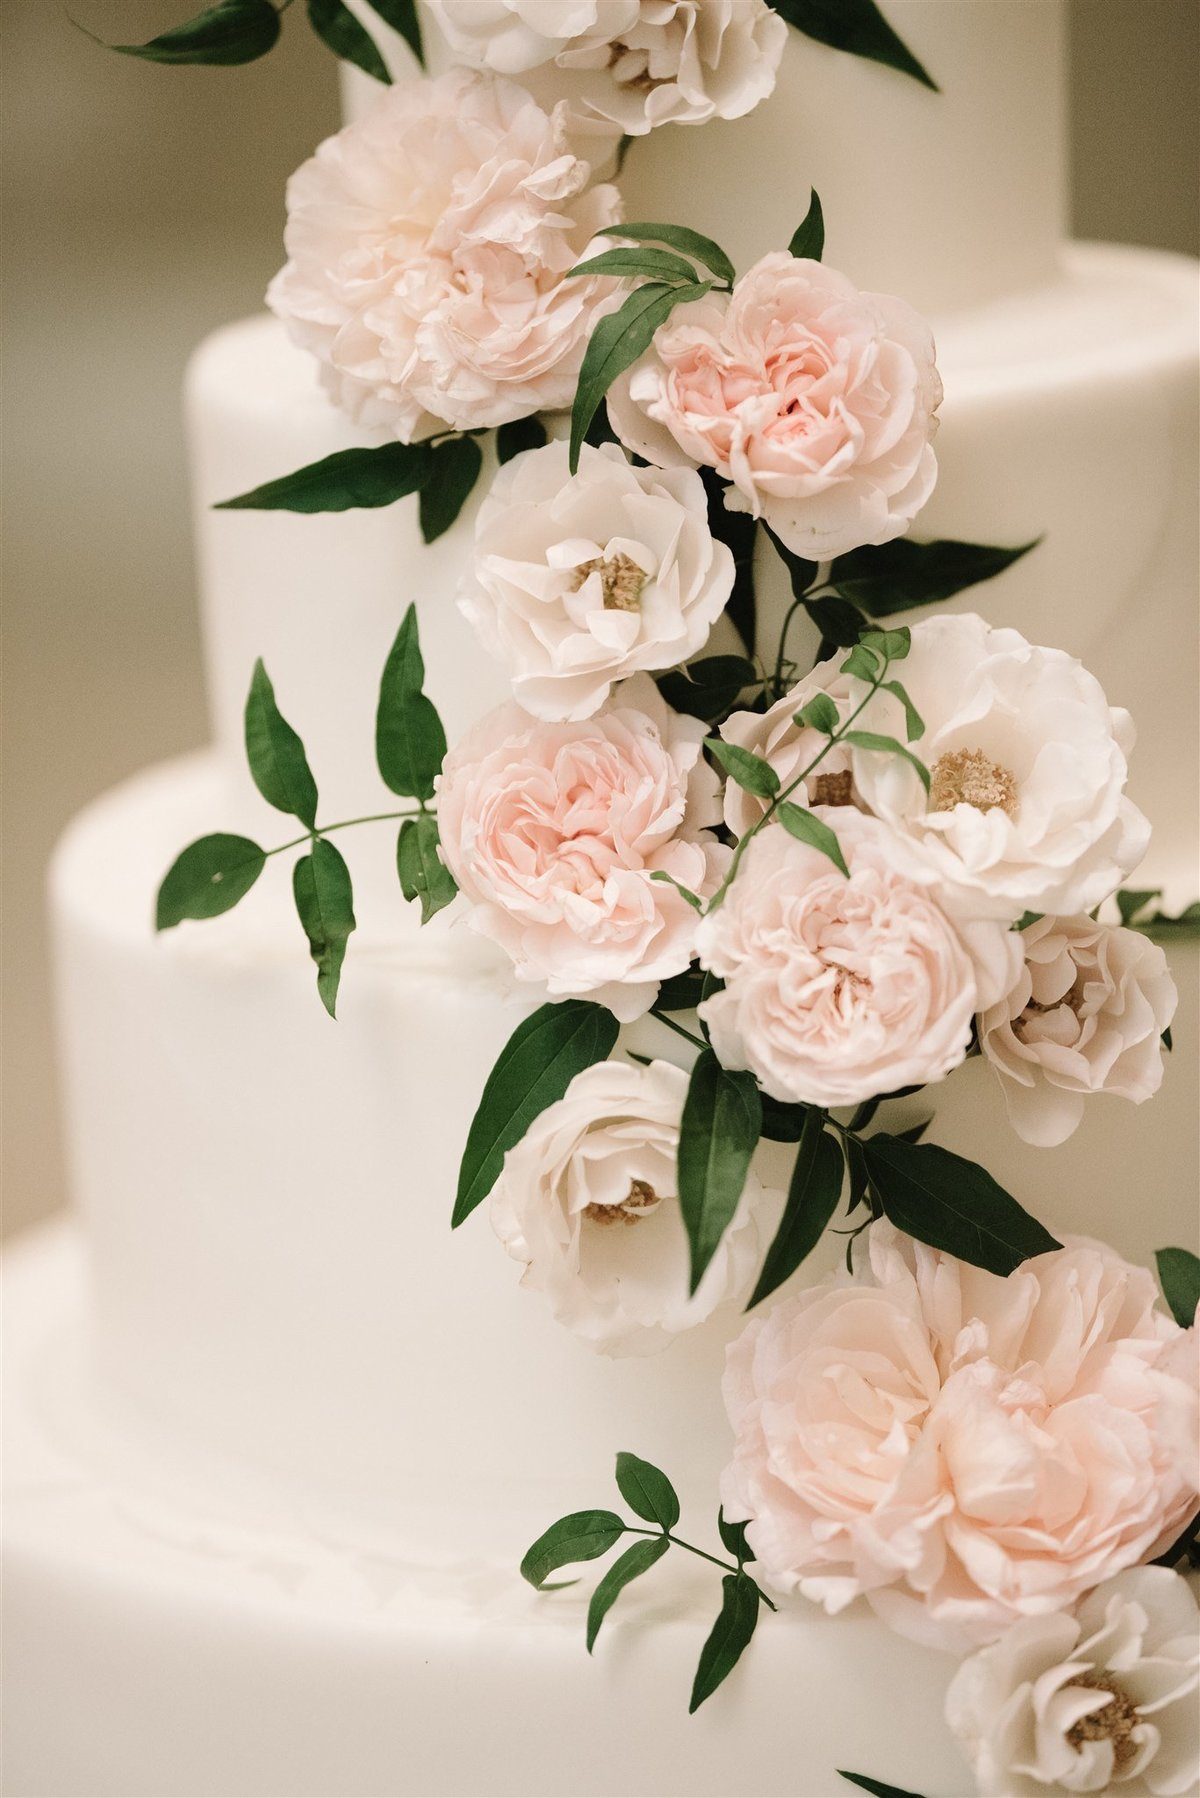 Flower covered wedding cake for a Cape Cod Wedding by luxury Cape Cod wedding planner and designer Always Yours Events